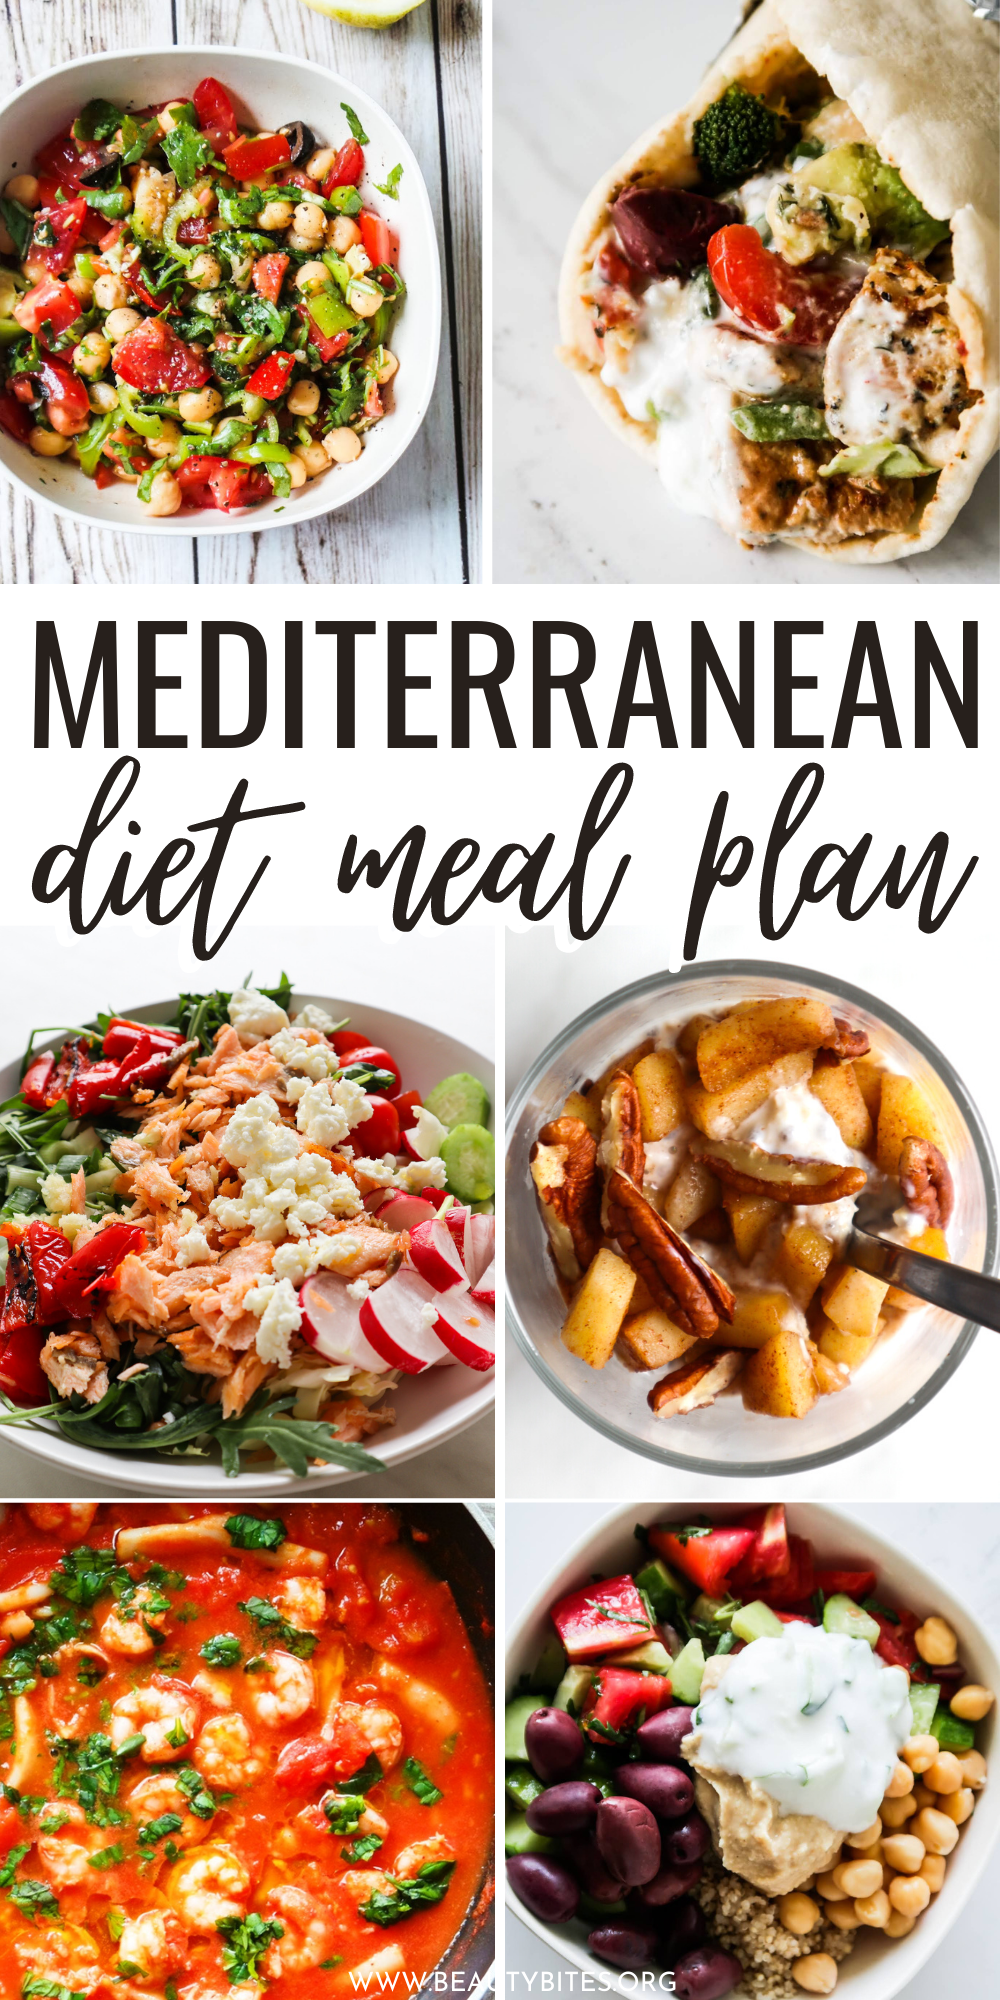 7-Day Mediterranean diet meal plan with healthy Mediterranean recipes for breakfast, lunch, dinner and snacks and a Mediterranean diet grocery list.